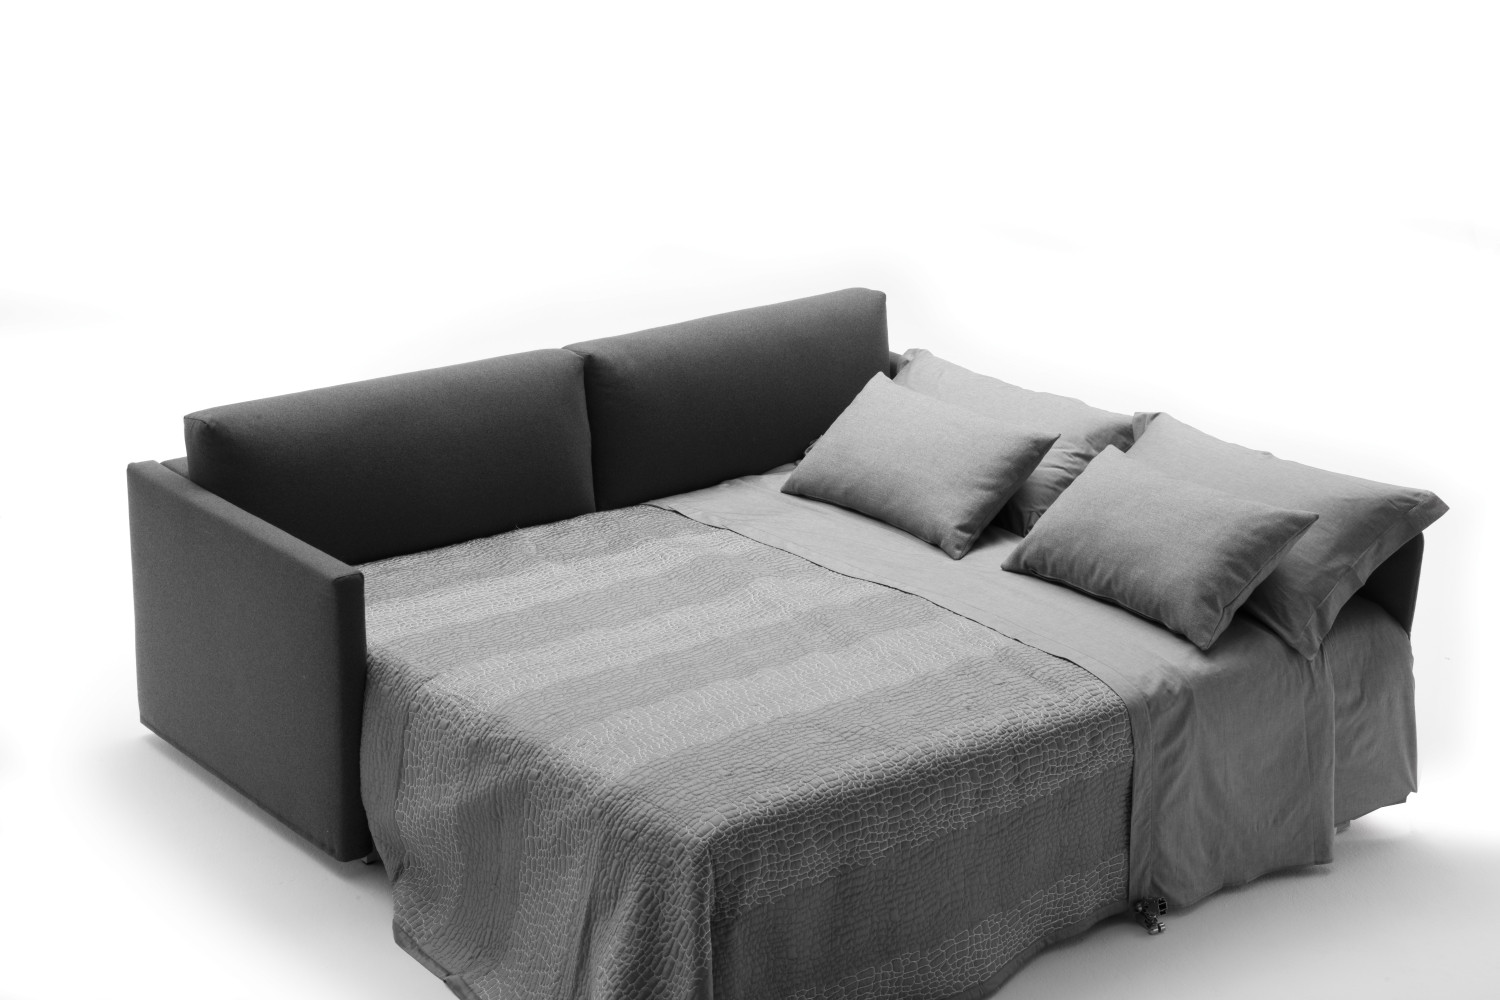 schlafsofa mit ausziehbaren bett frank. Black Bedroom Furniture Sets. Home Design Ideas